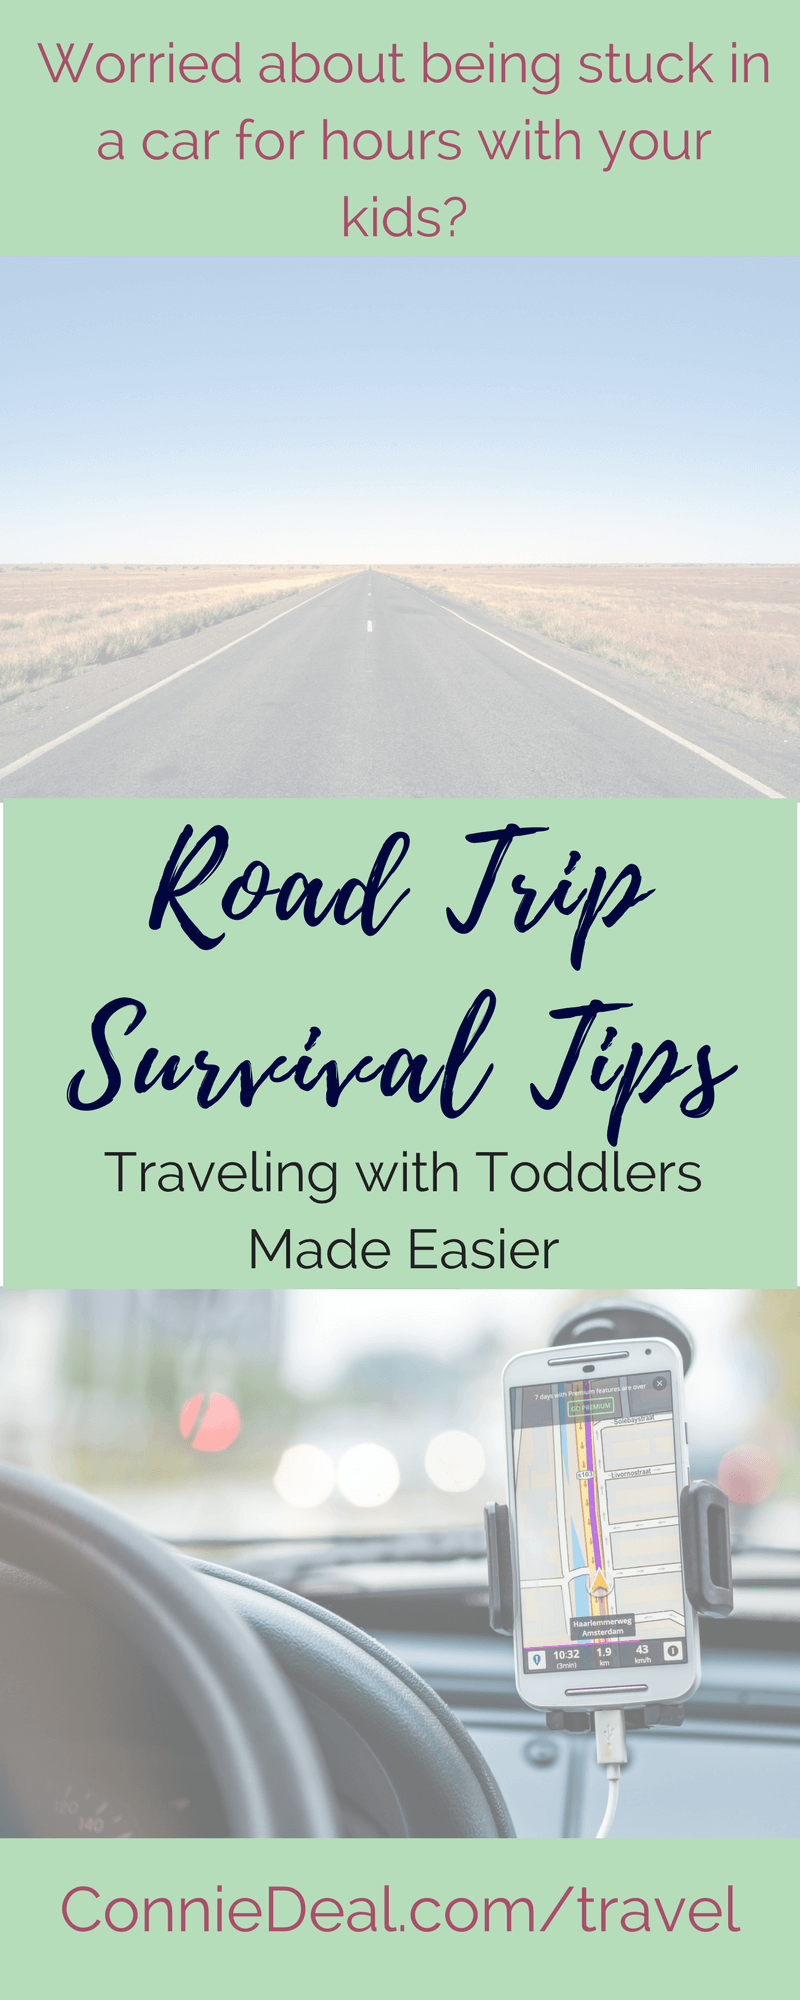 Taking babies, toddlers, and preschoolers ANYWHERE is a lot of work, but taking them on #vacation is even a bigger task, one that can make us want to crawl back under the covers and forget the whole idea. But, traveling with toddlers is lots of fun and certainly worth doing! Click through to find out how to make #travelingwithtoddlers more fun and actually feel easy! #roadtrip #familyvacation #summertravel #traveltips